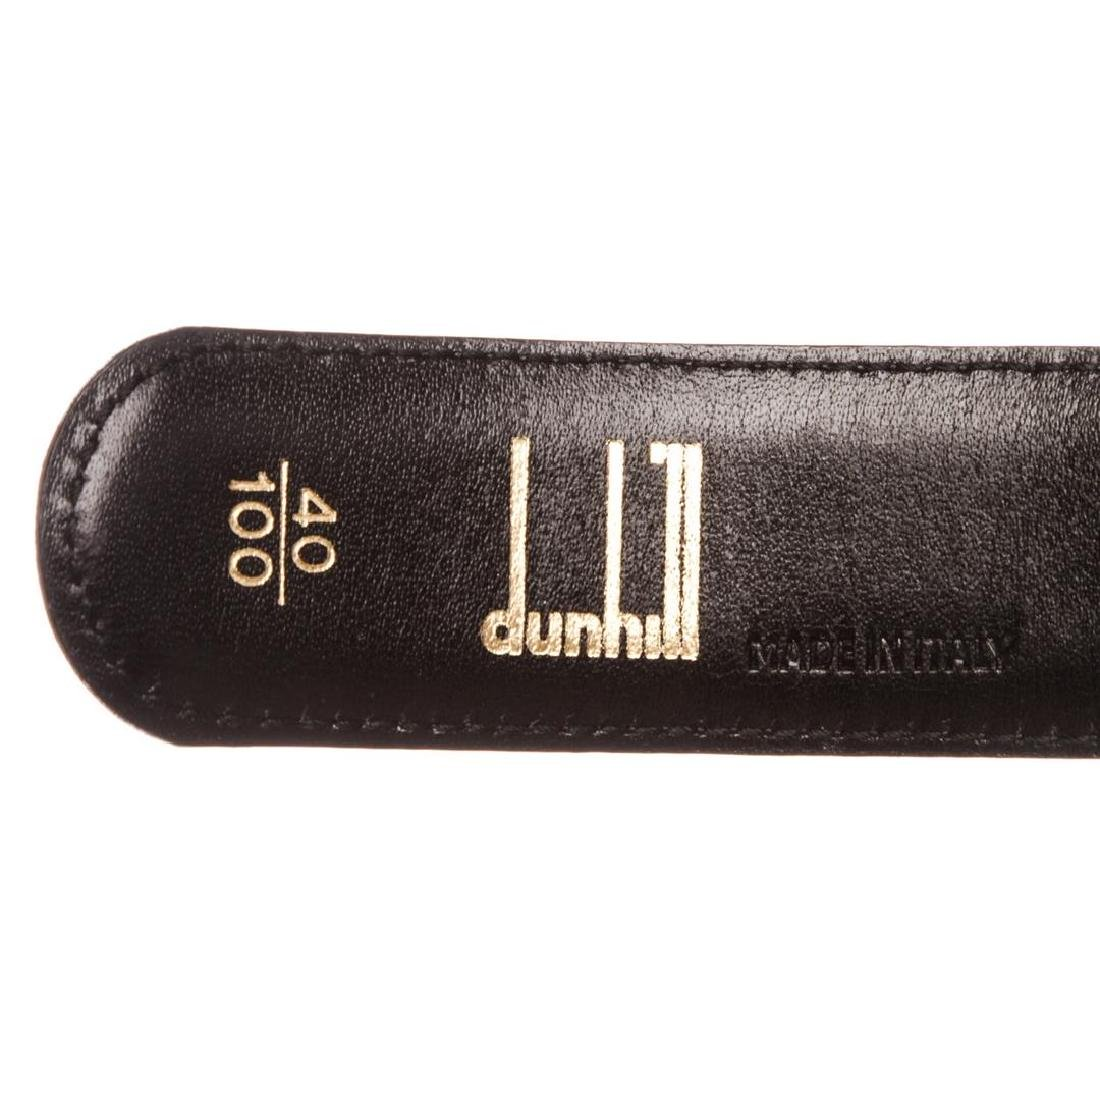 Dunhill Black Leather Gold Buckle Belt - 6